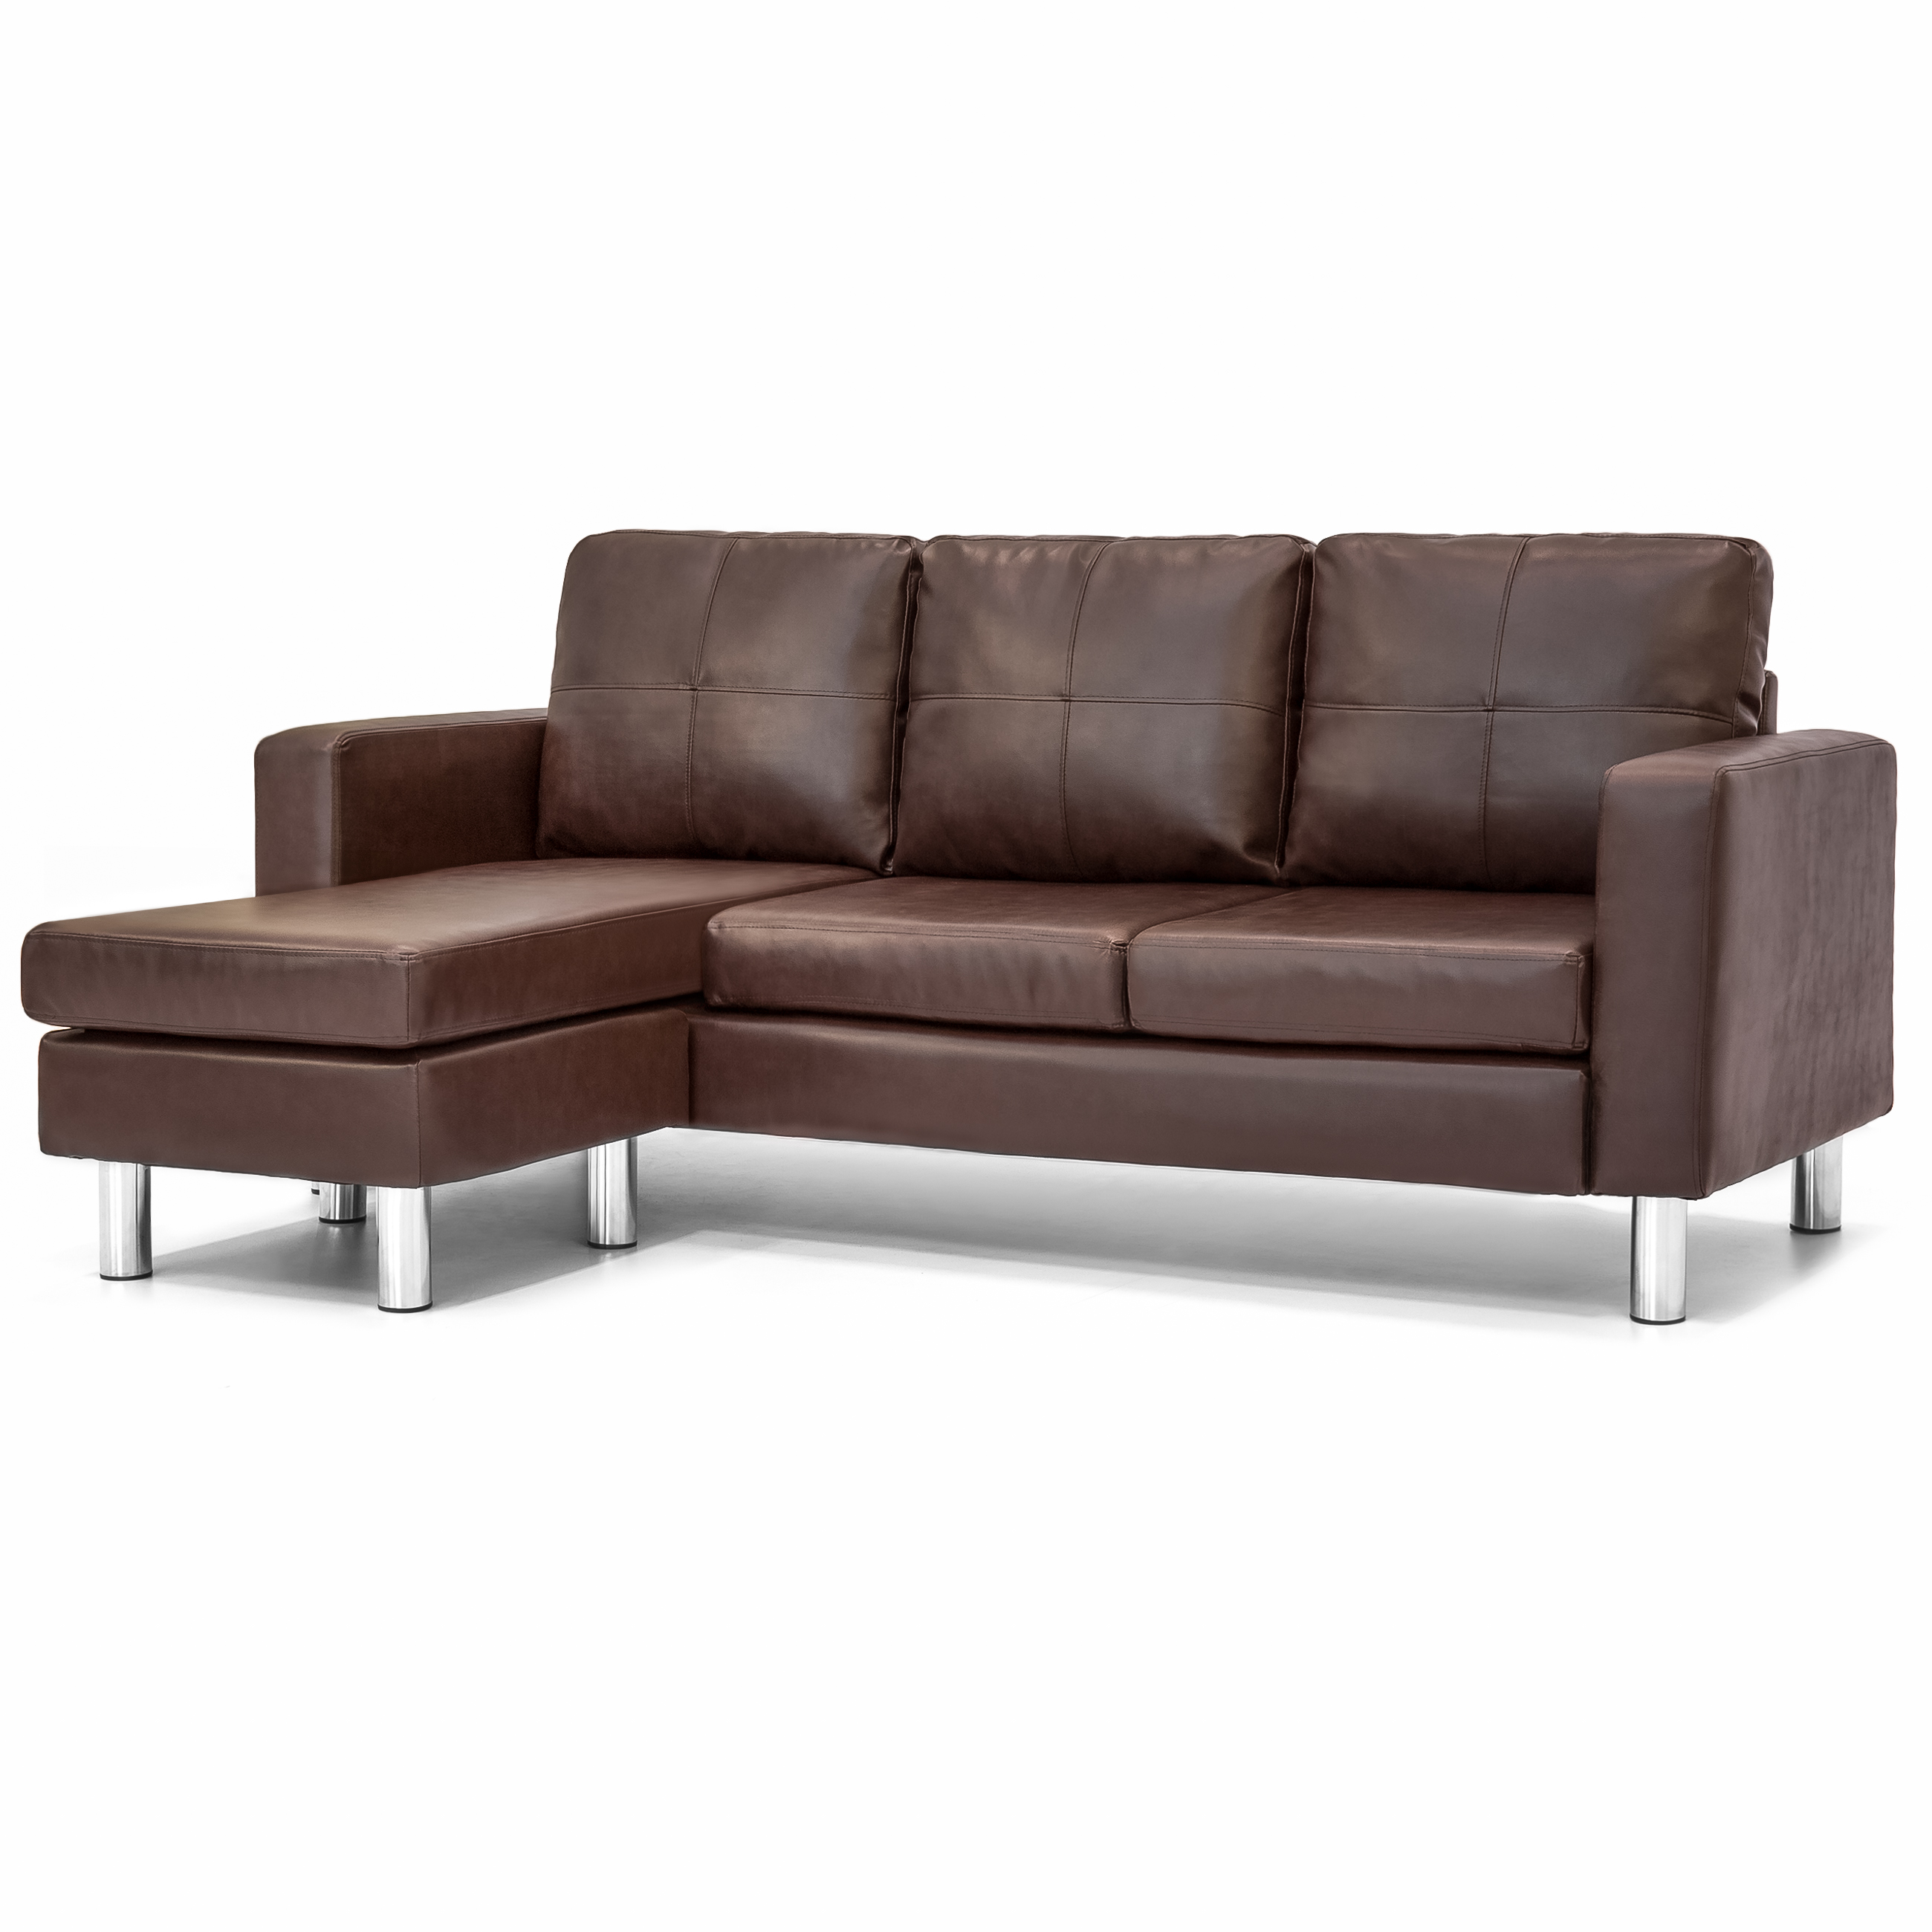 Great Best Choice Products Leather L Shape Sectional Sofa Couch W/ Reversible  Chaise Ottoman (